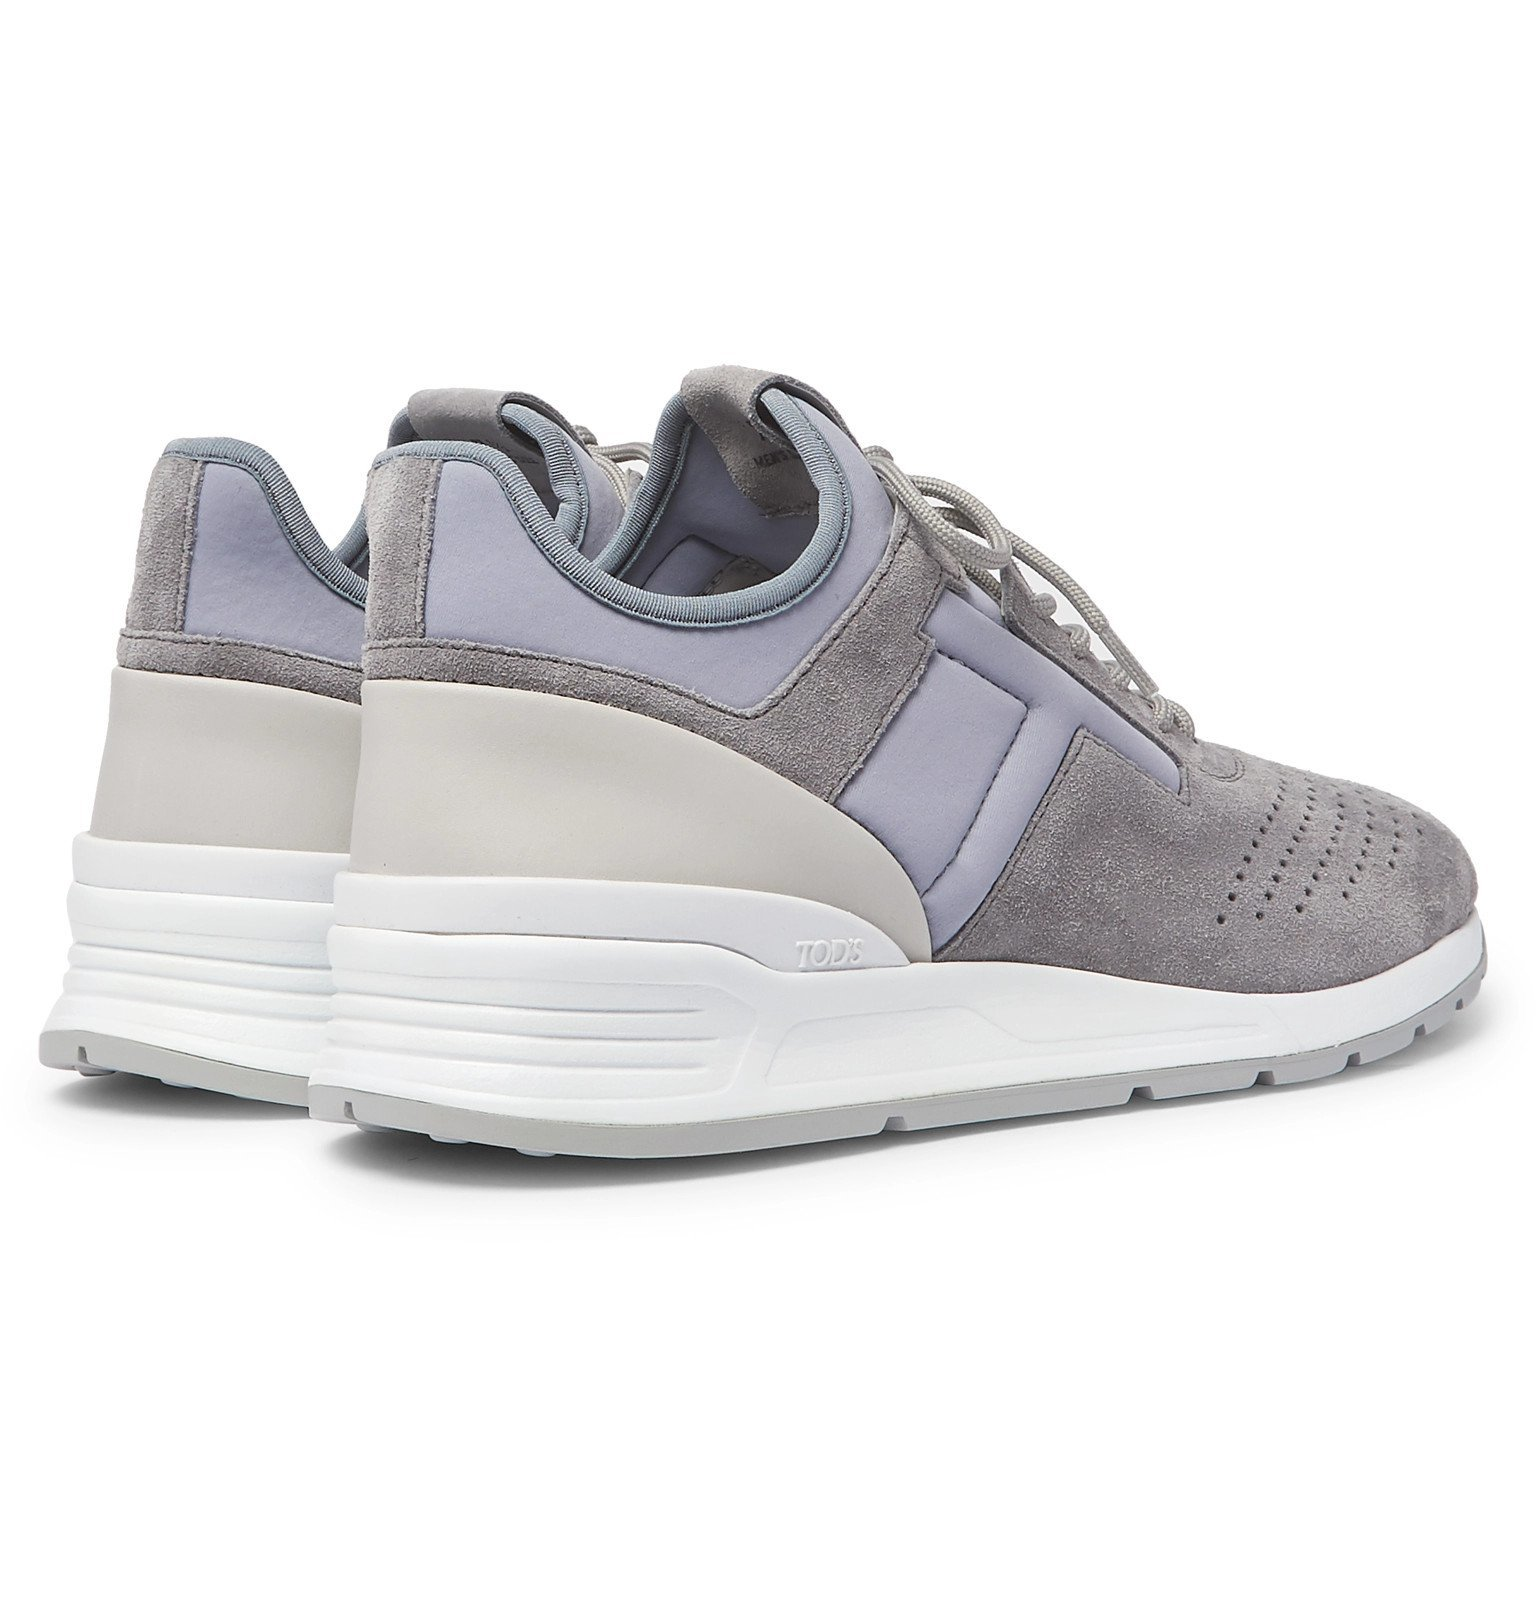 Tod's - Sportivo Leather-Trimmed Suede and Neoprene Sneakers - Gray